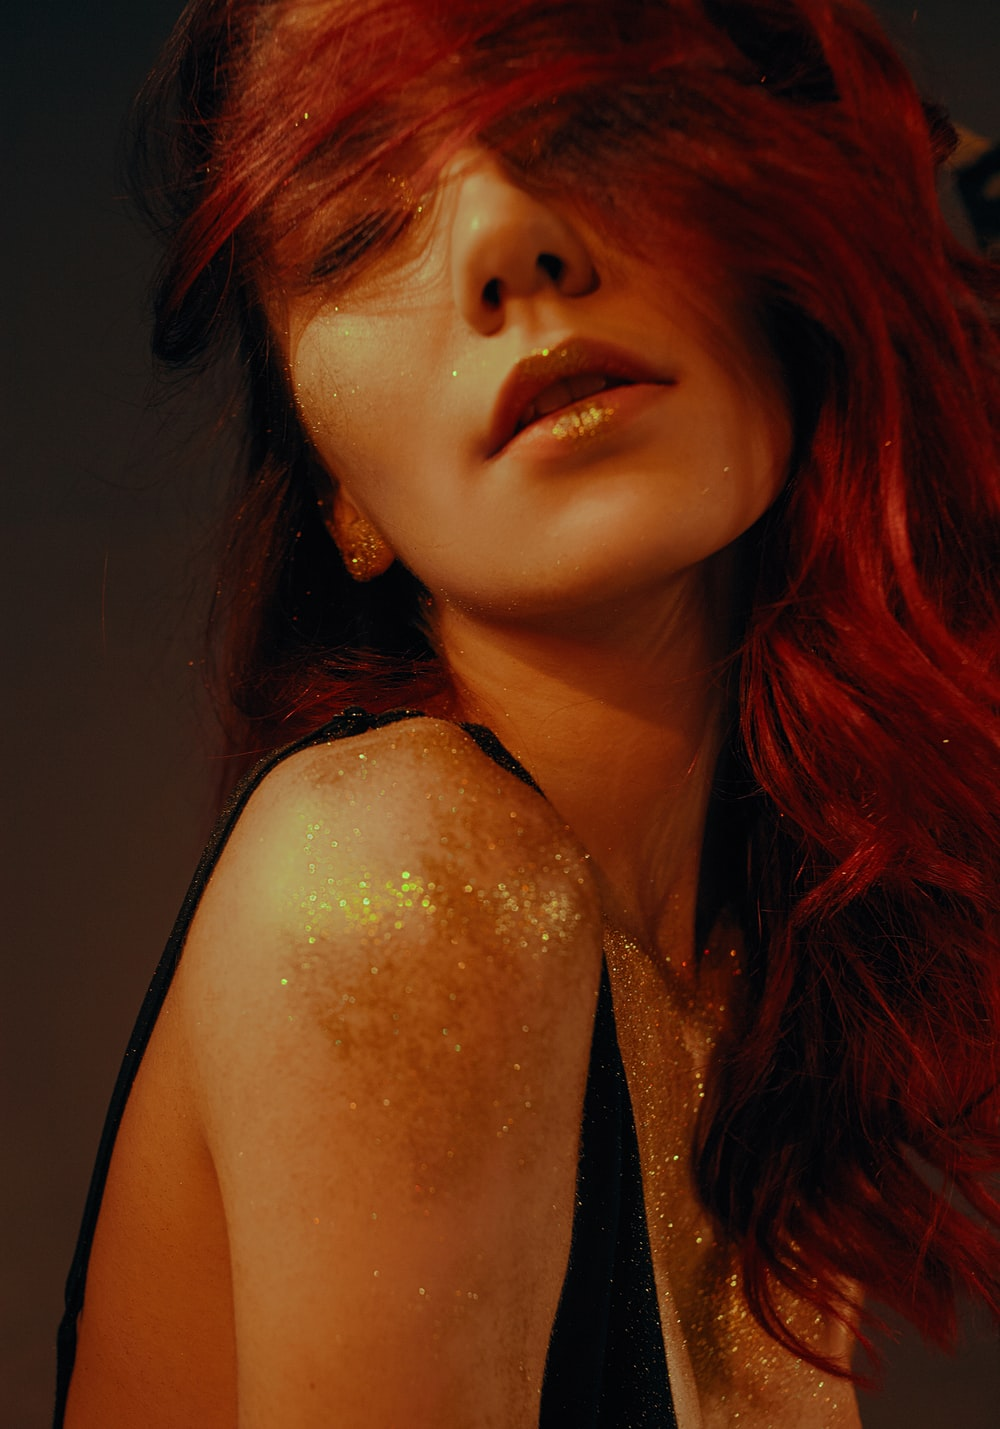 woman with glitters on her body